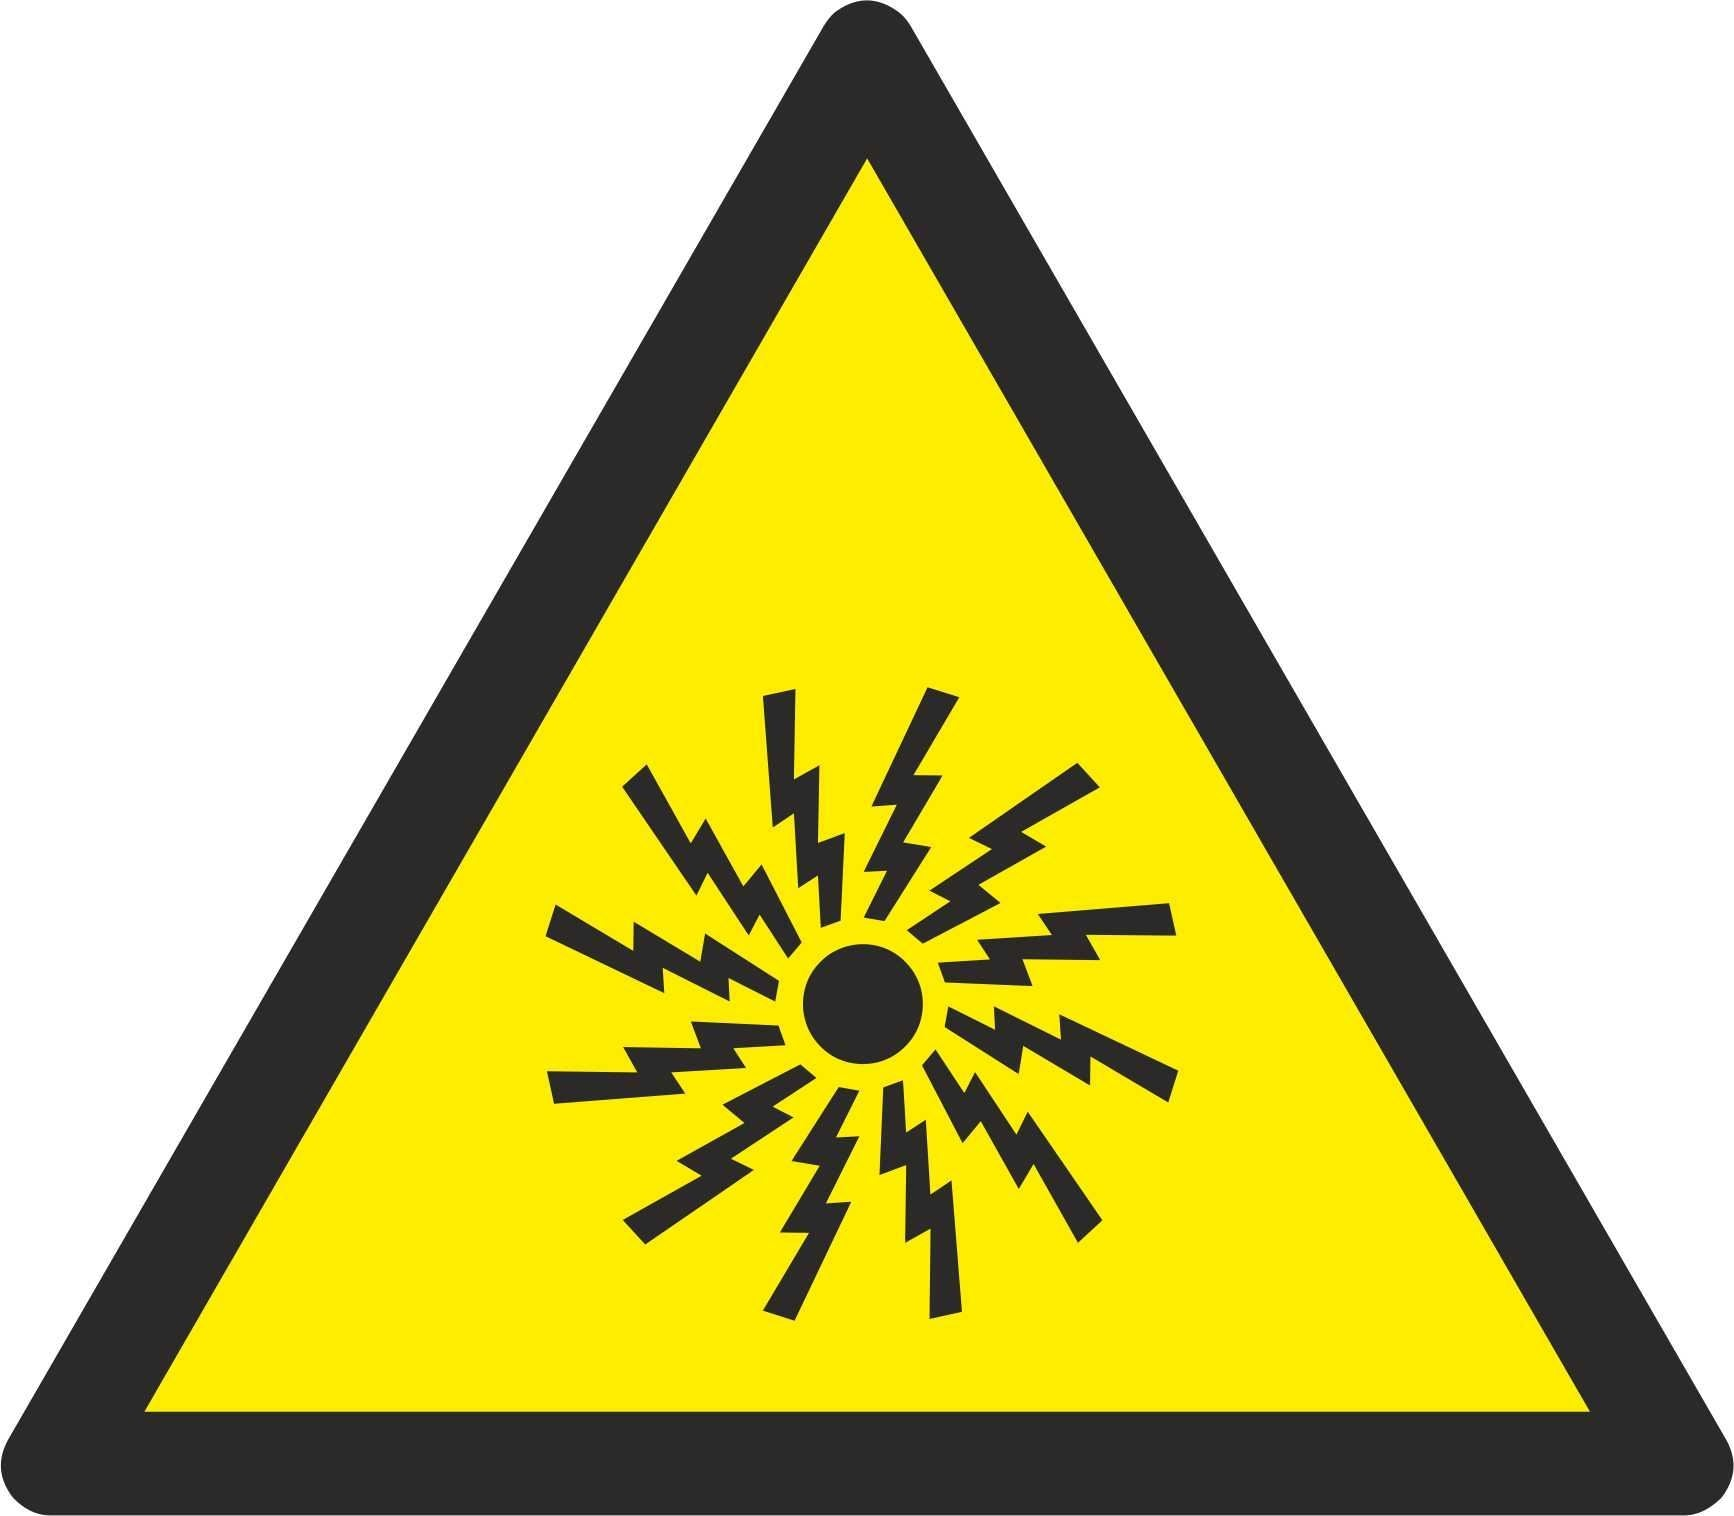 Warning Alarm - Symbol sticker sheet